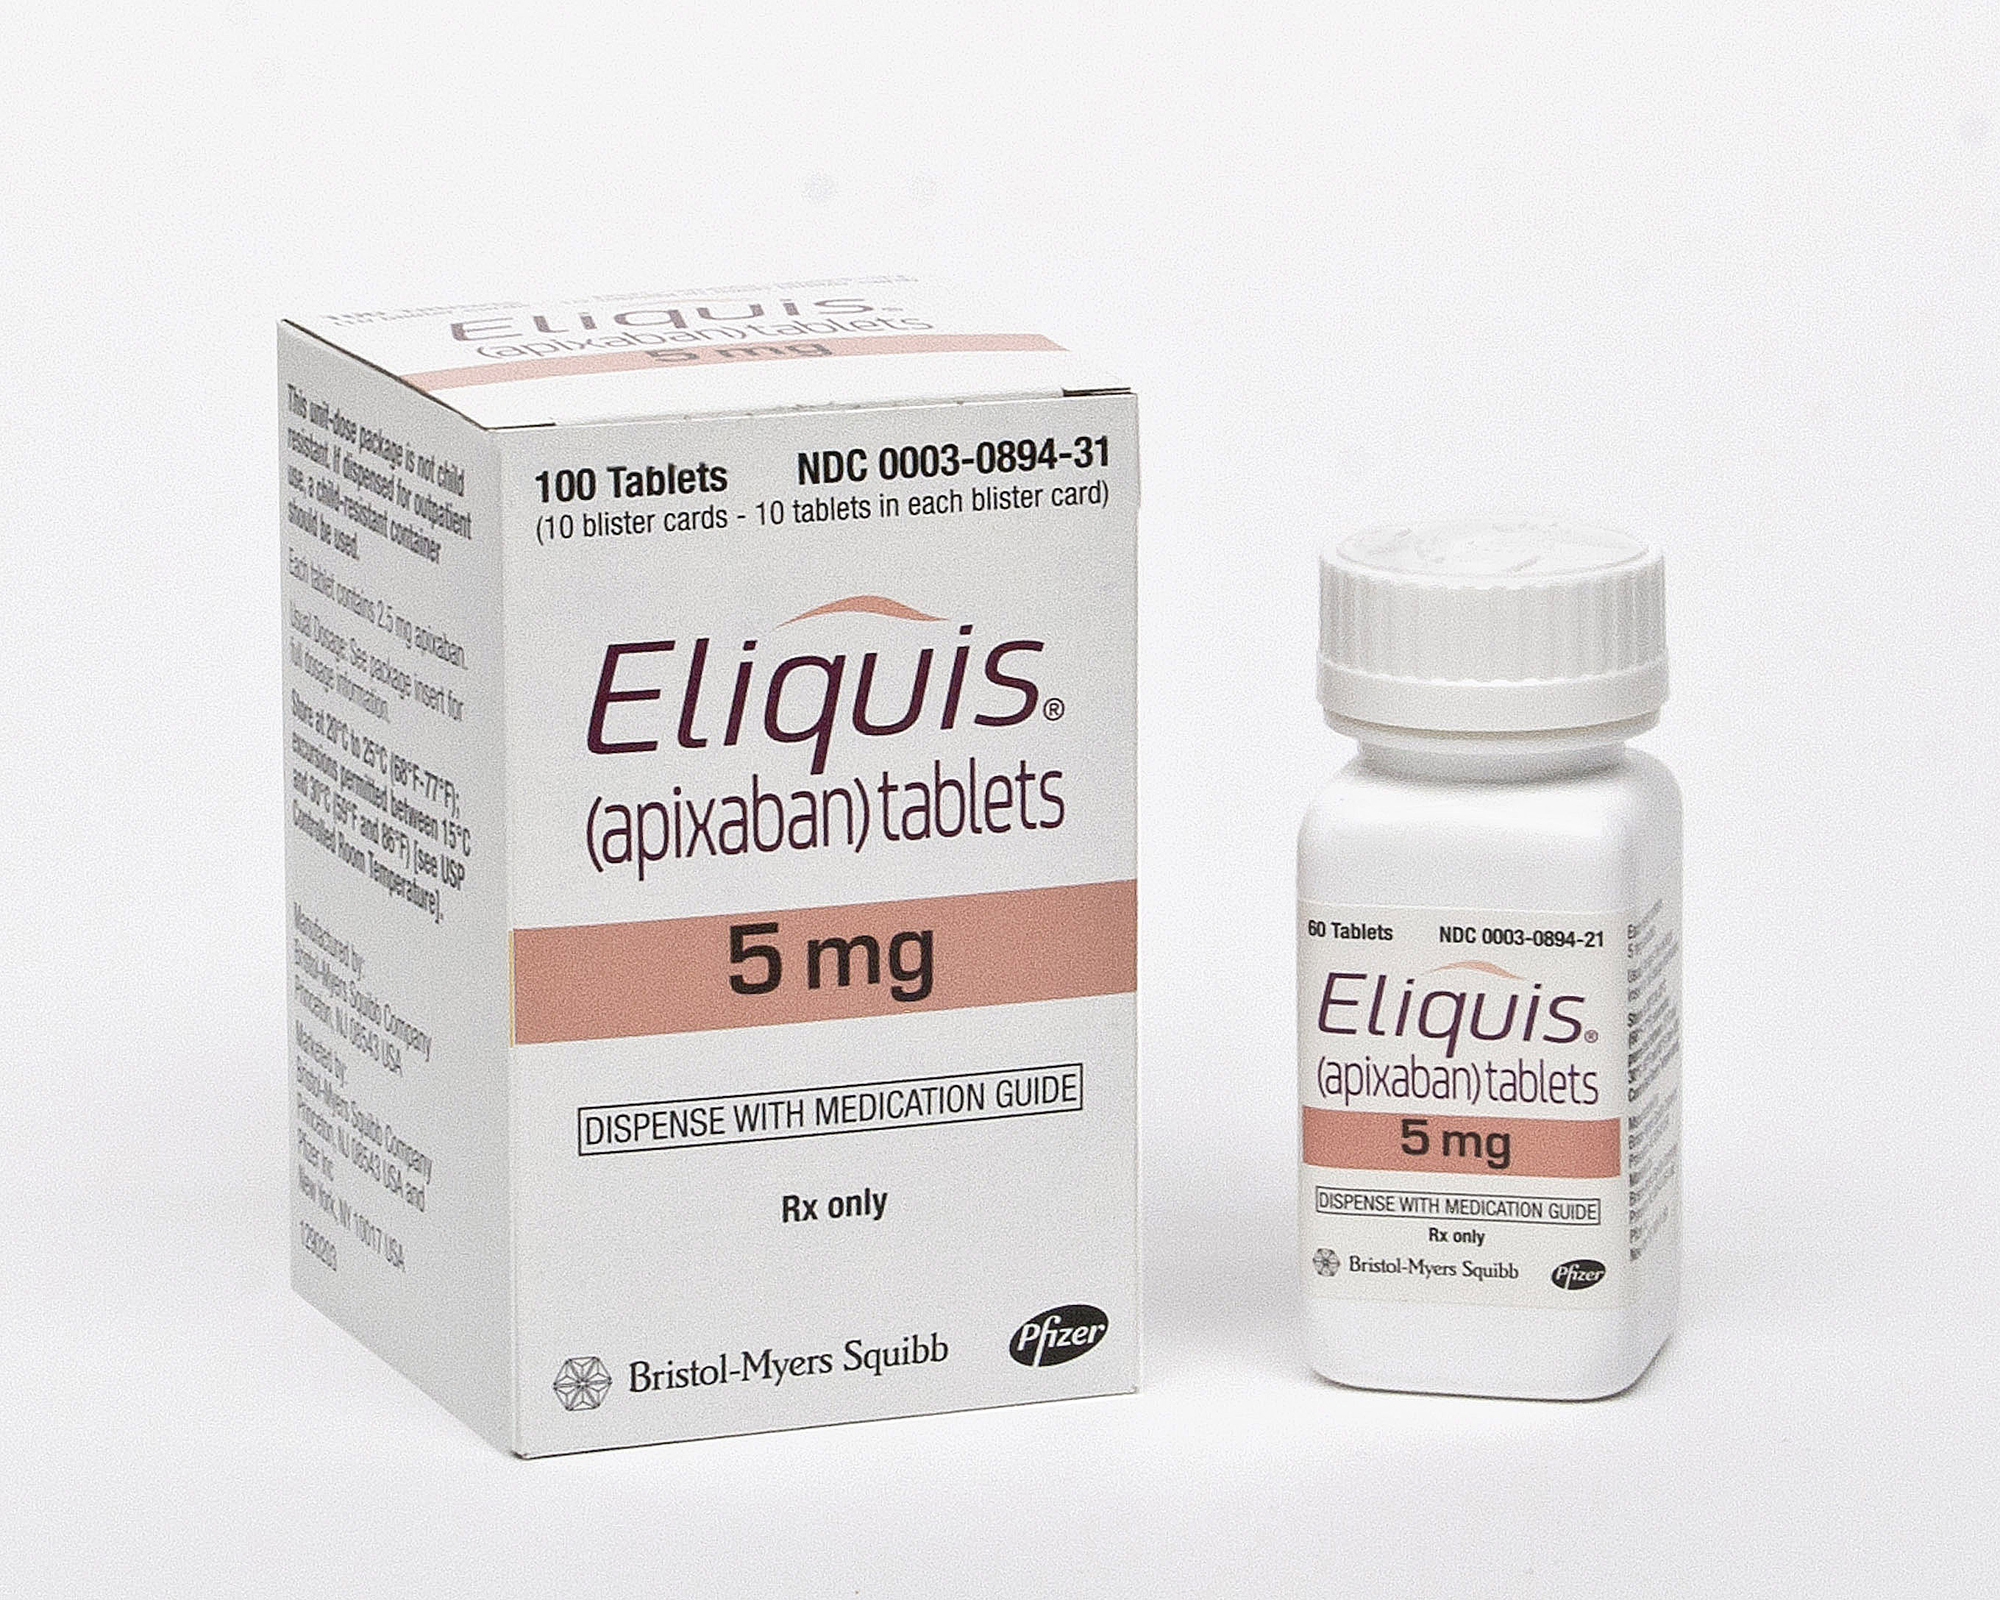 ESC: New Pfizer, BMS real-world data could boost Eliquis in Europe |  FiercePharma